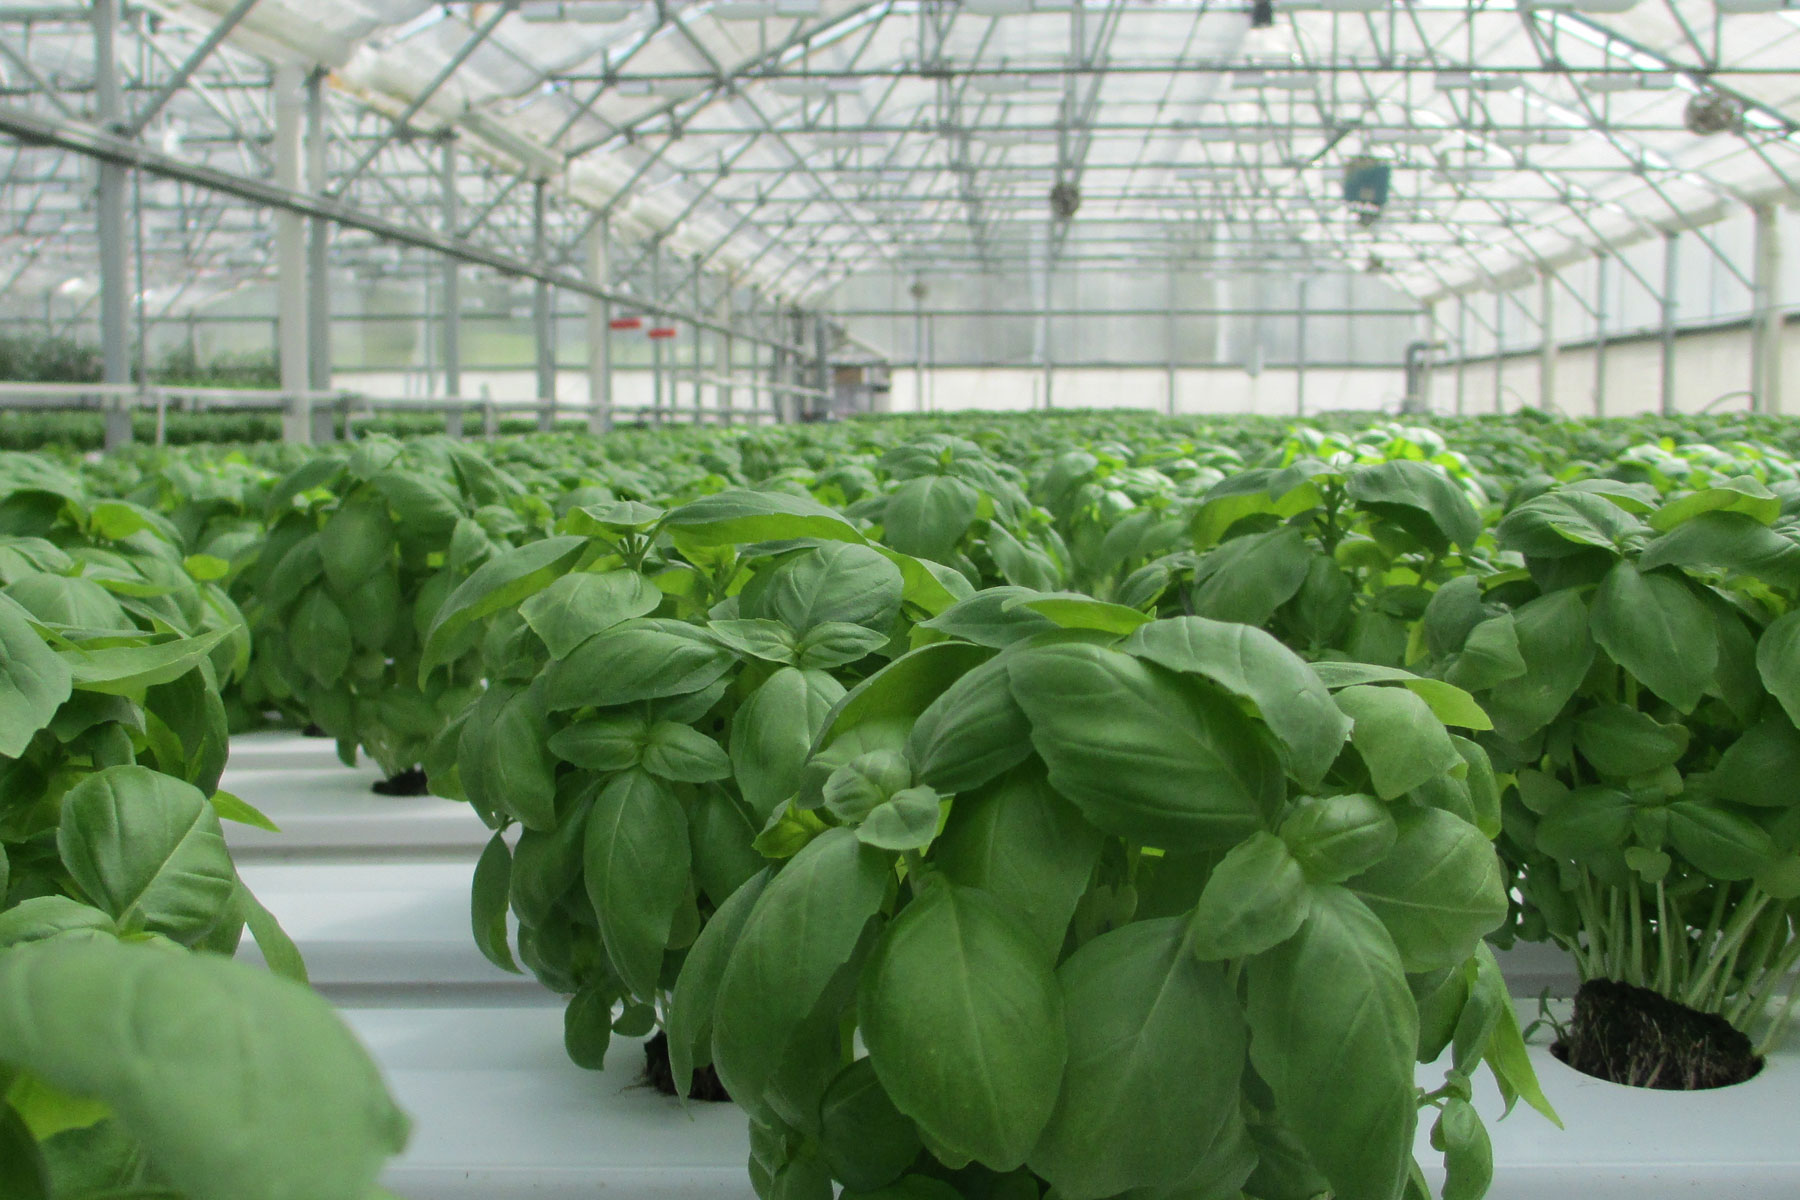 Greenhouse view of basil image